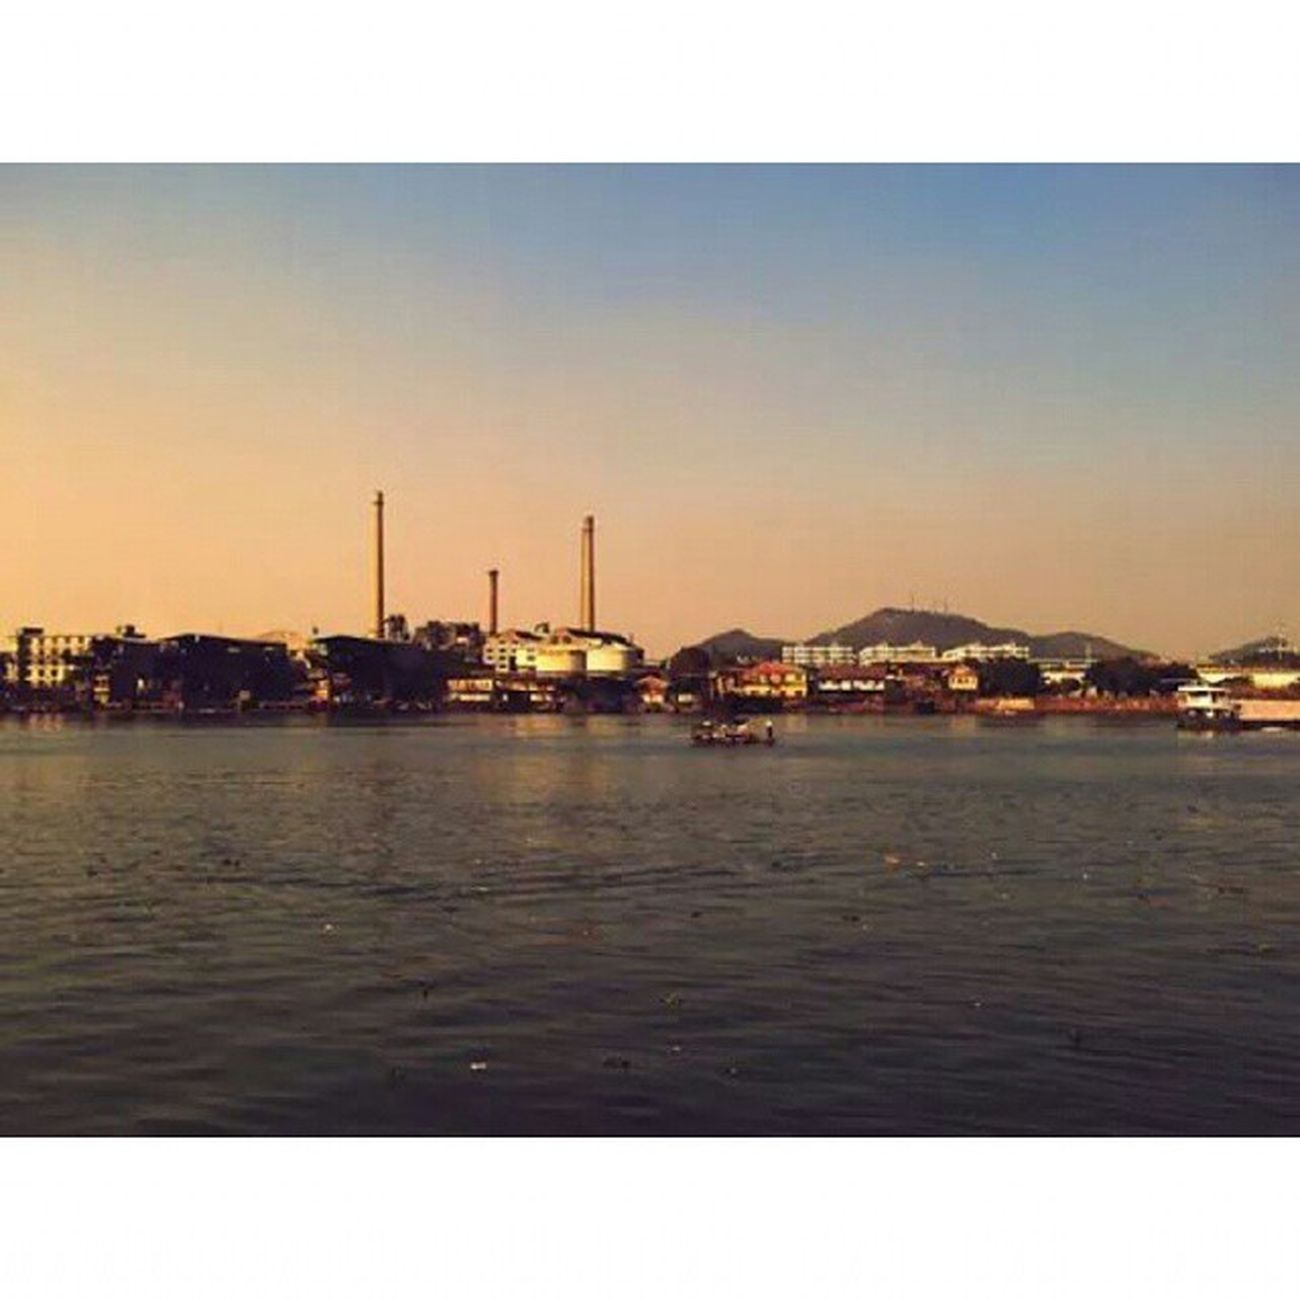 Made with @nocrop_rc Rcnocrop Shunde